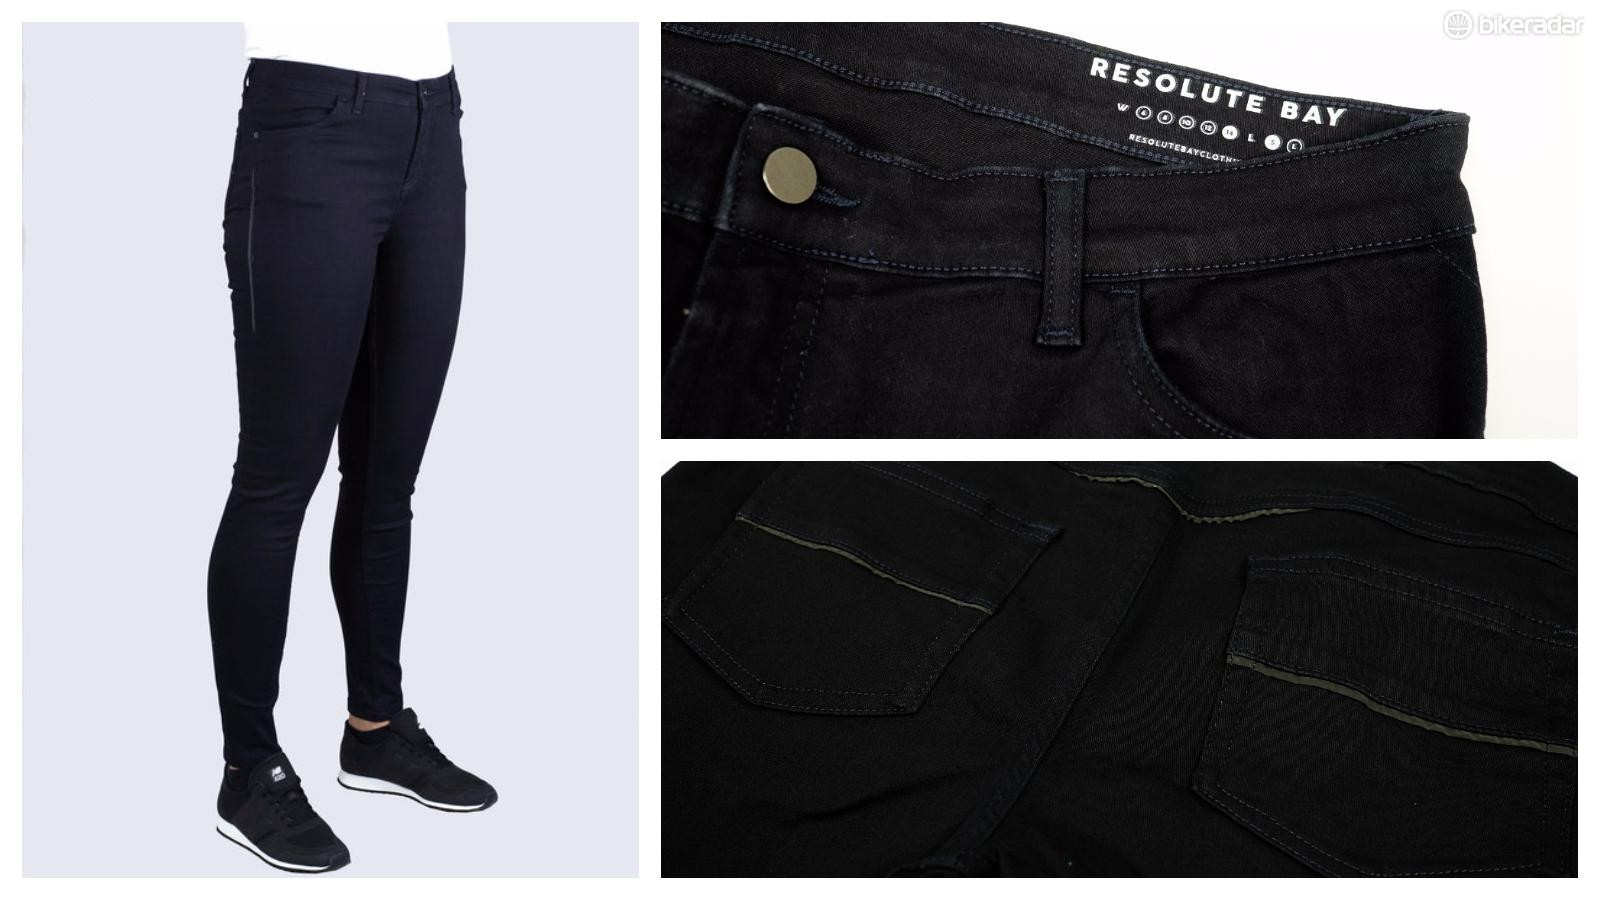 Resolute Bay's jeans are designed to look good off the bike and work well on it